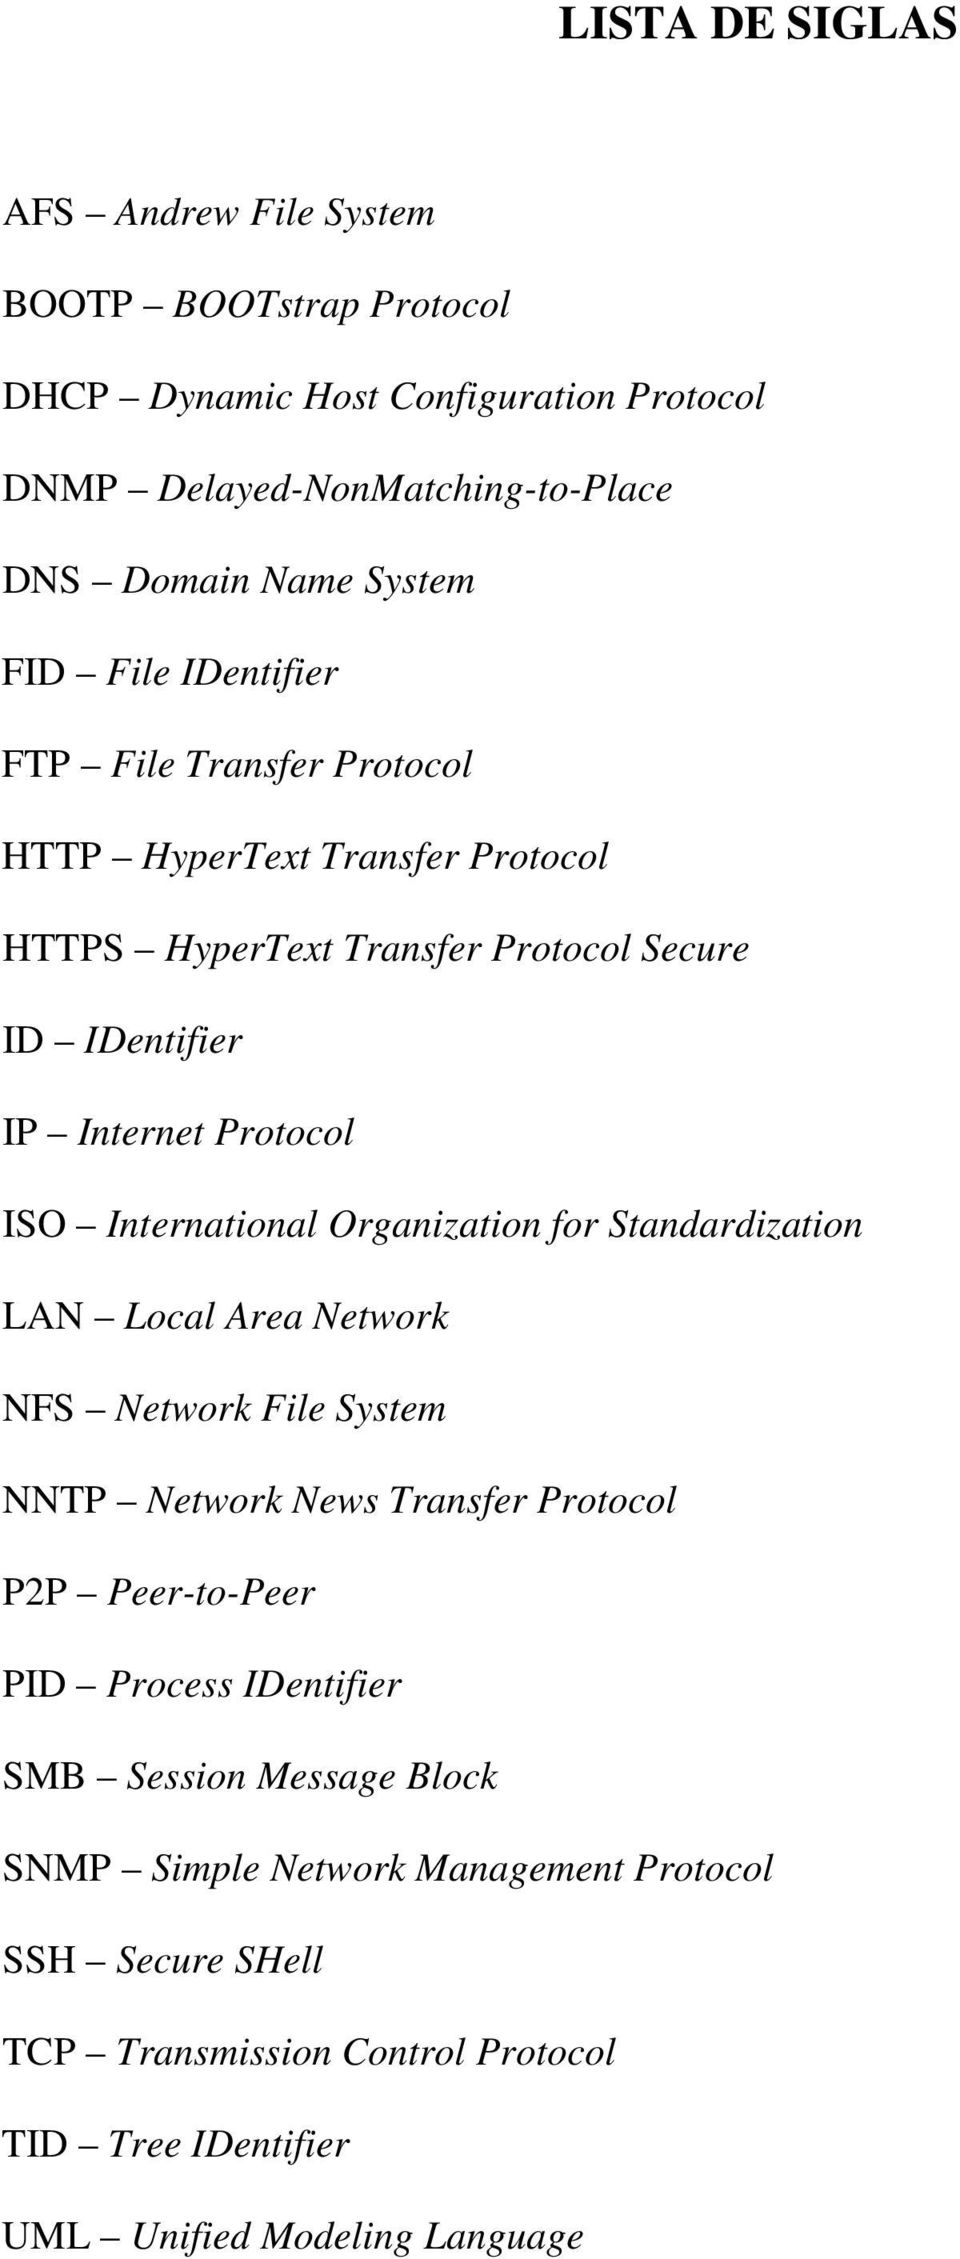 International Organization for Standardization LAN Local Area Network NFS Network File System NNTP Network News Transfer Protocol P2P Peer-to-Peer PID Process